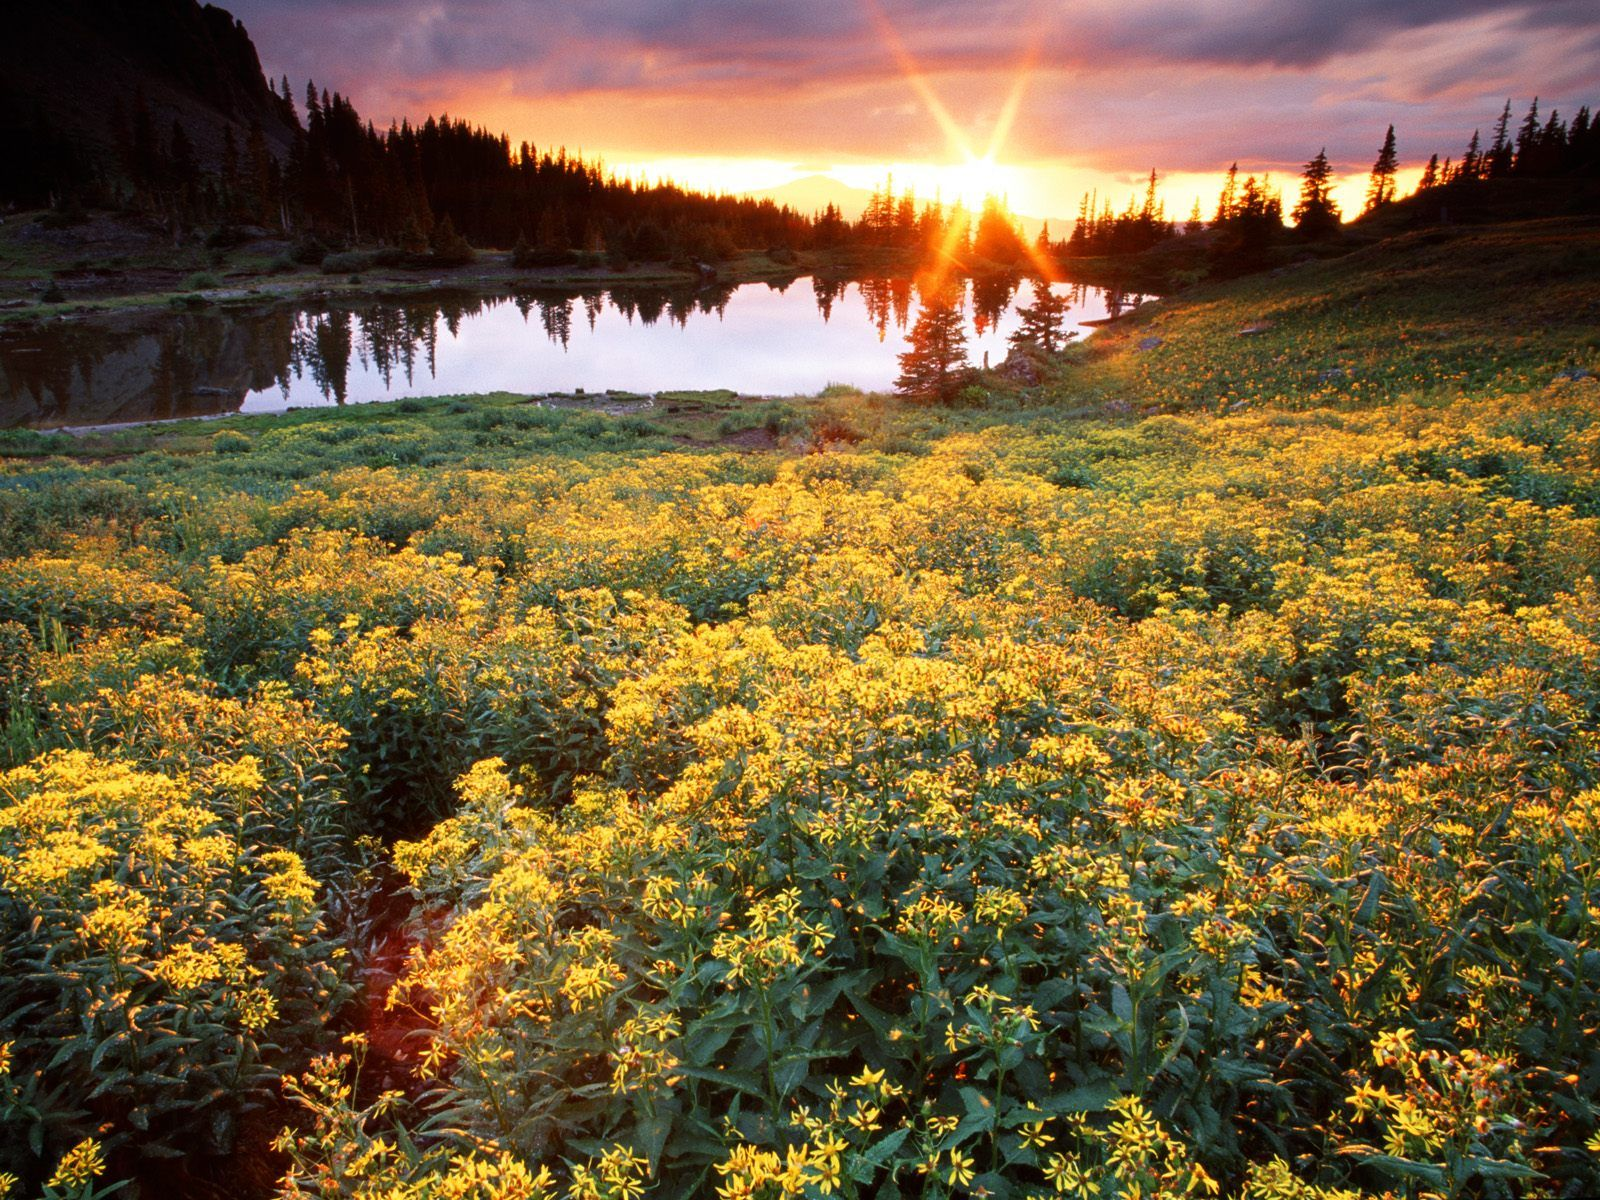 Gold King Basin San Juan Colorado. I would love to just lay in those flowers and relax right this moment as the sun set.